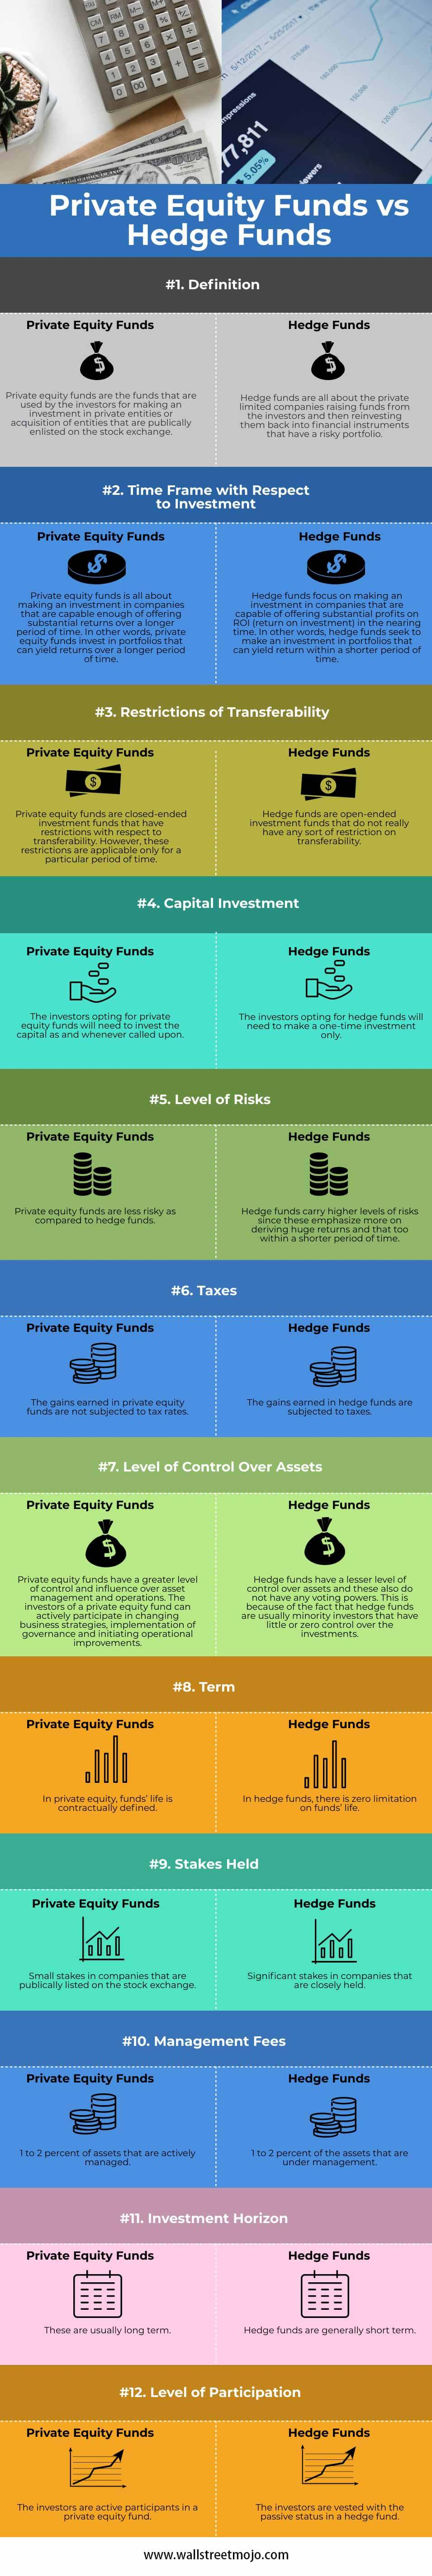 Private-Equity-Funds-vs-Hedge-Funds-info